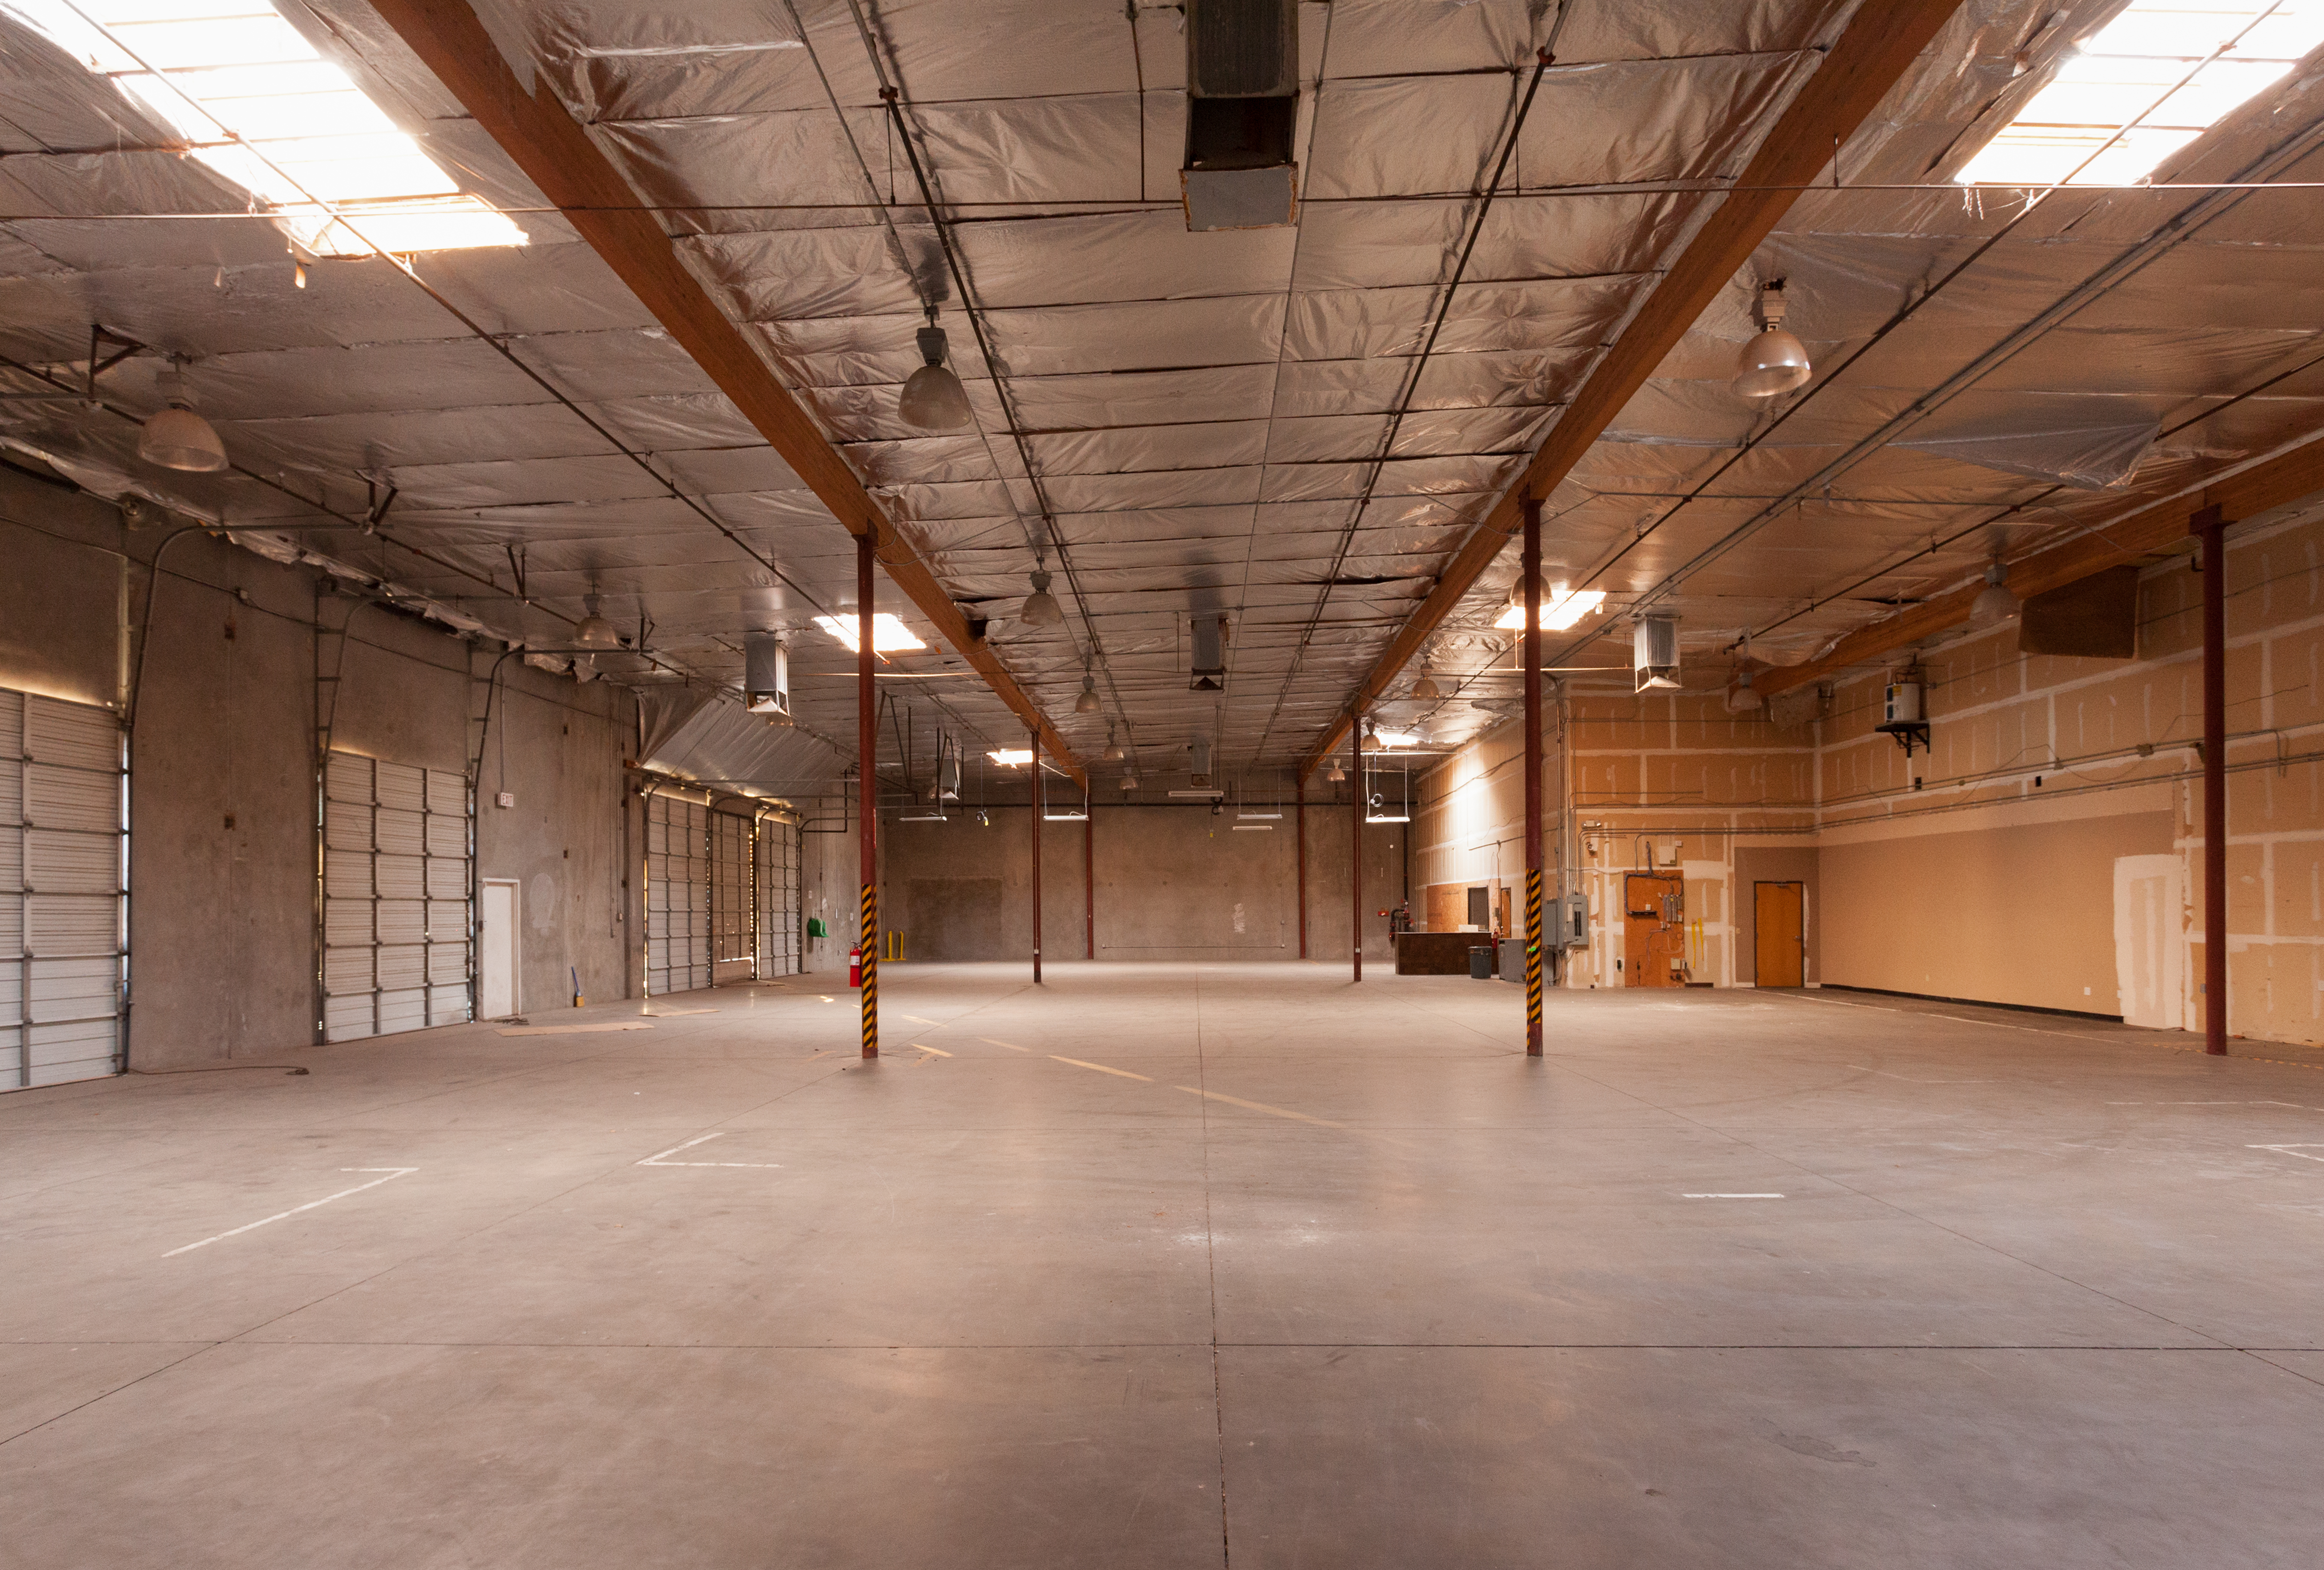 D&H New Warehousing Facility in Tucson